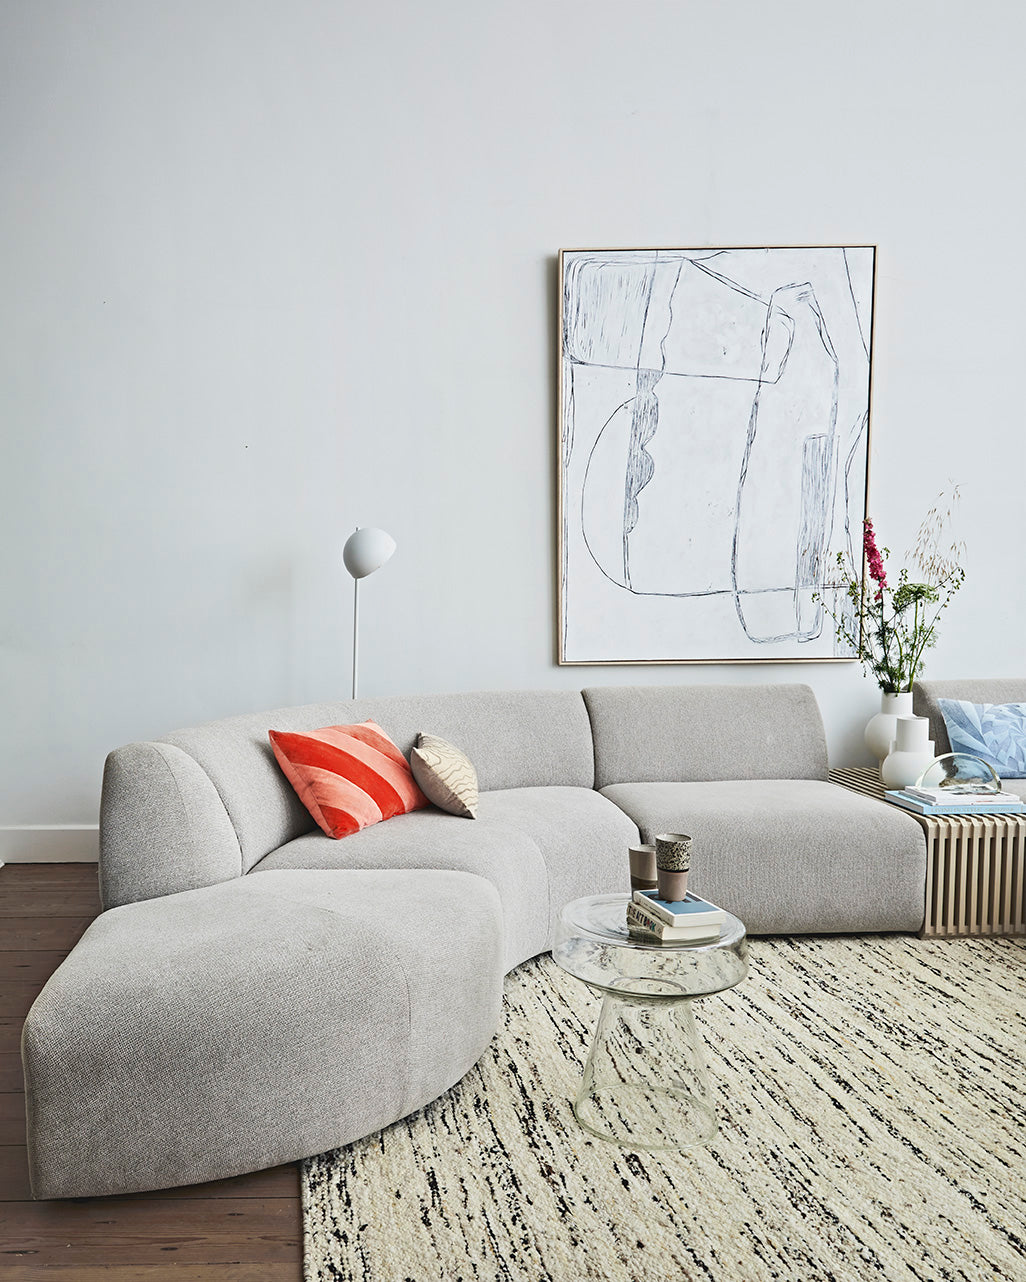 jax couch: element middle, sneak, light grey